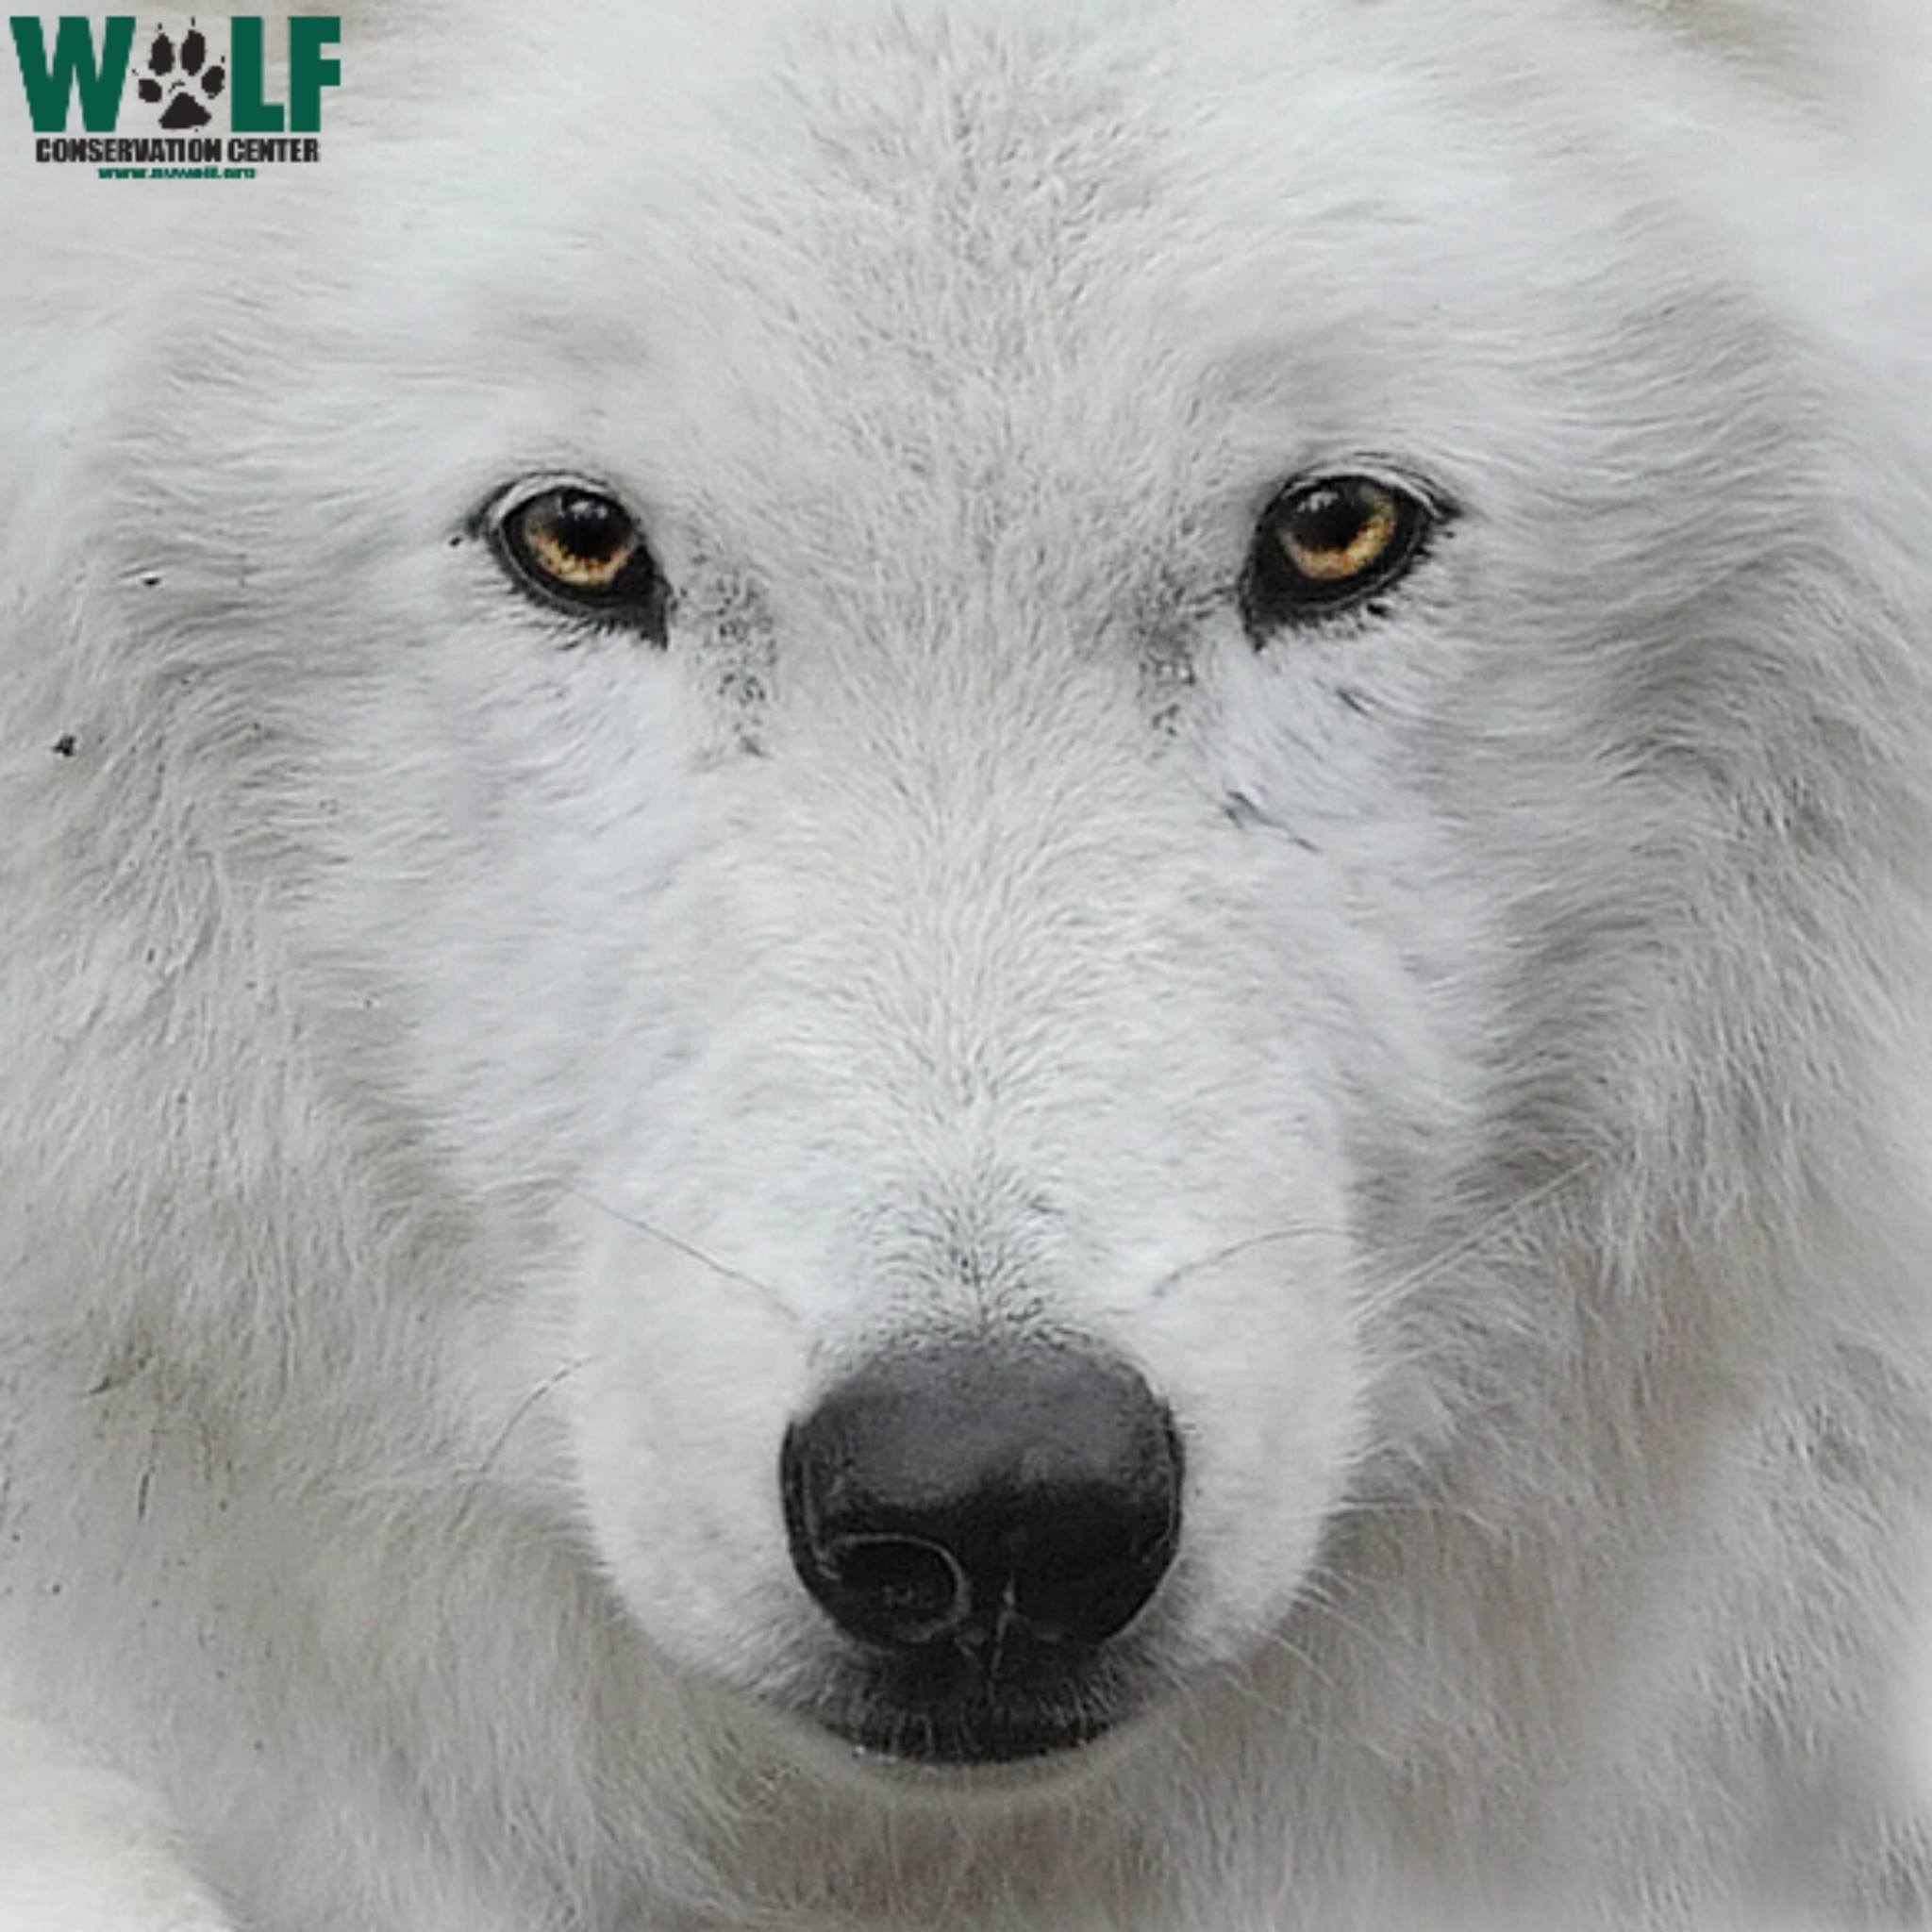 SOUTH SALEM - Wolves of North America @ Wolf Conservation Center (WCC)